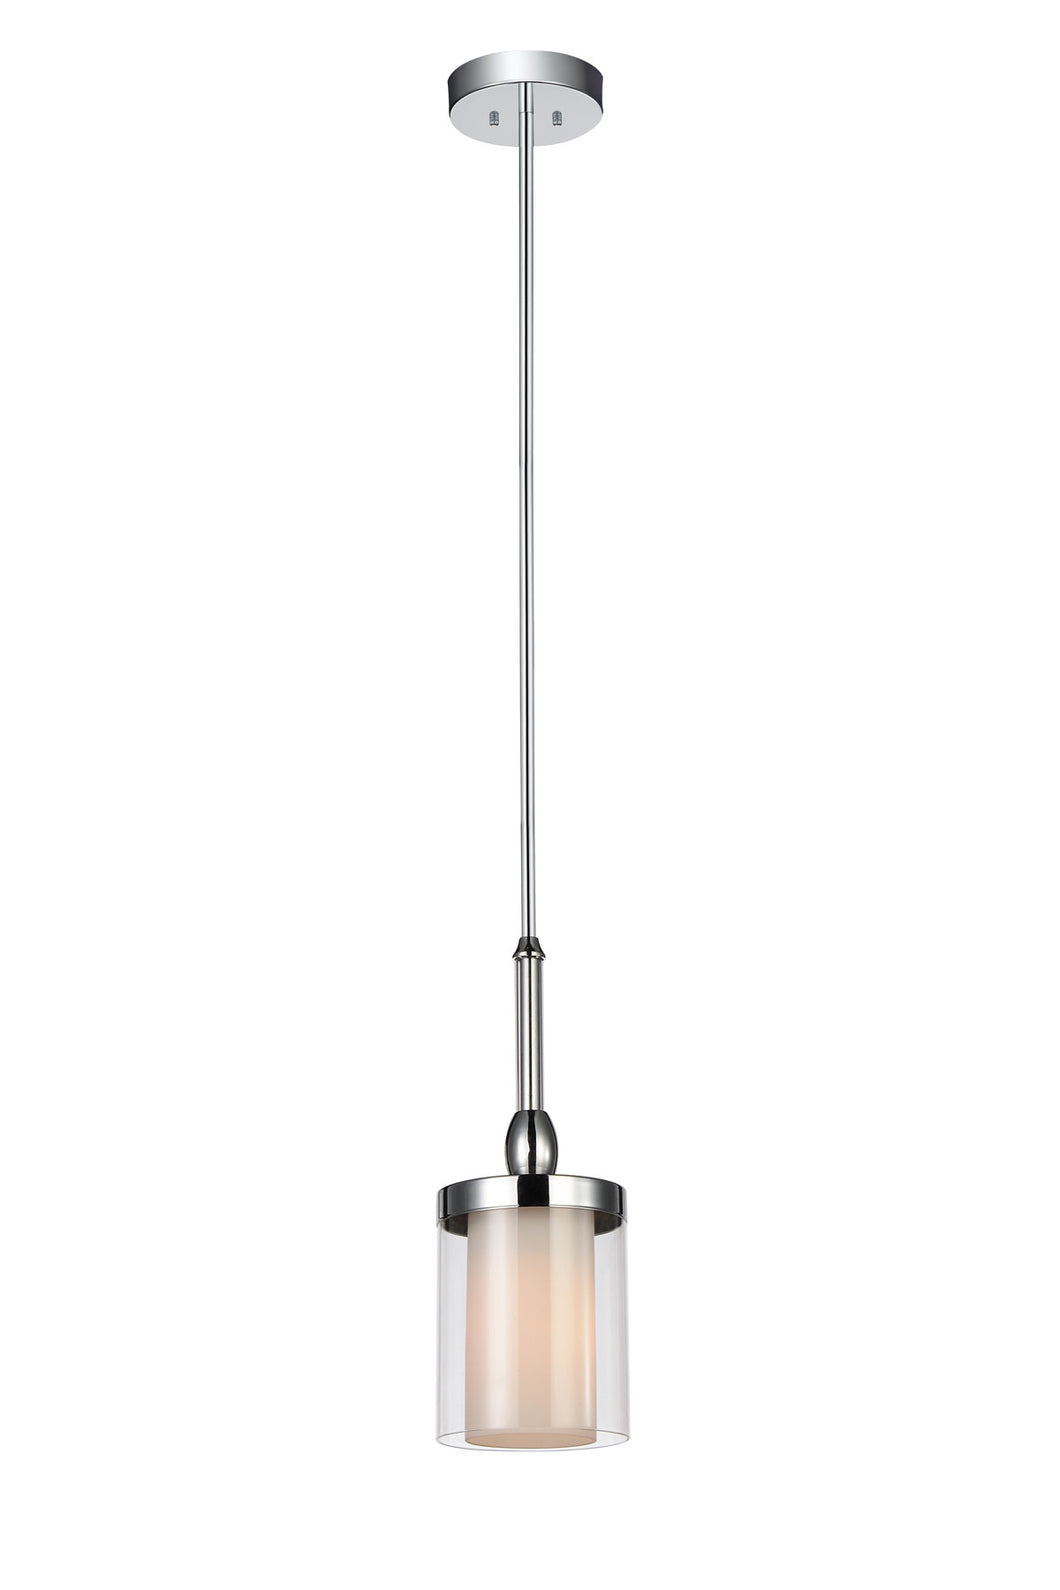 1 Light Candle Mini Chandelier with Chrome finish